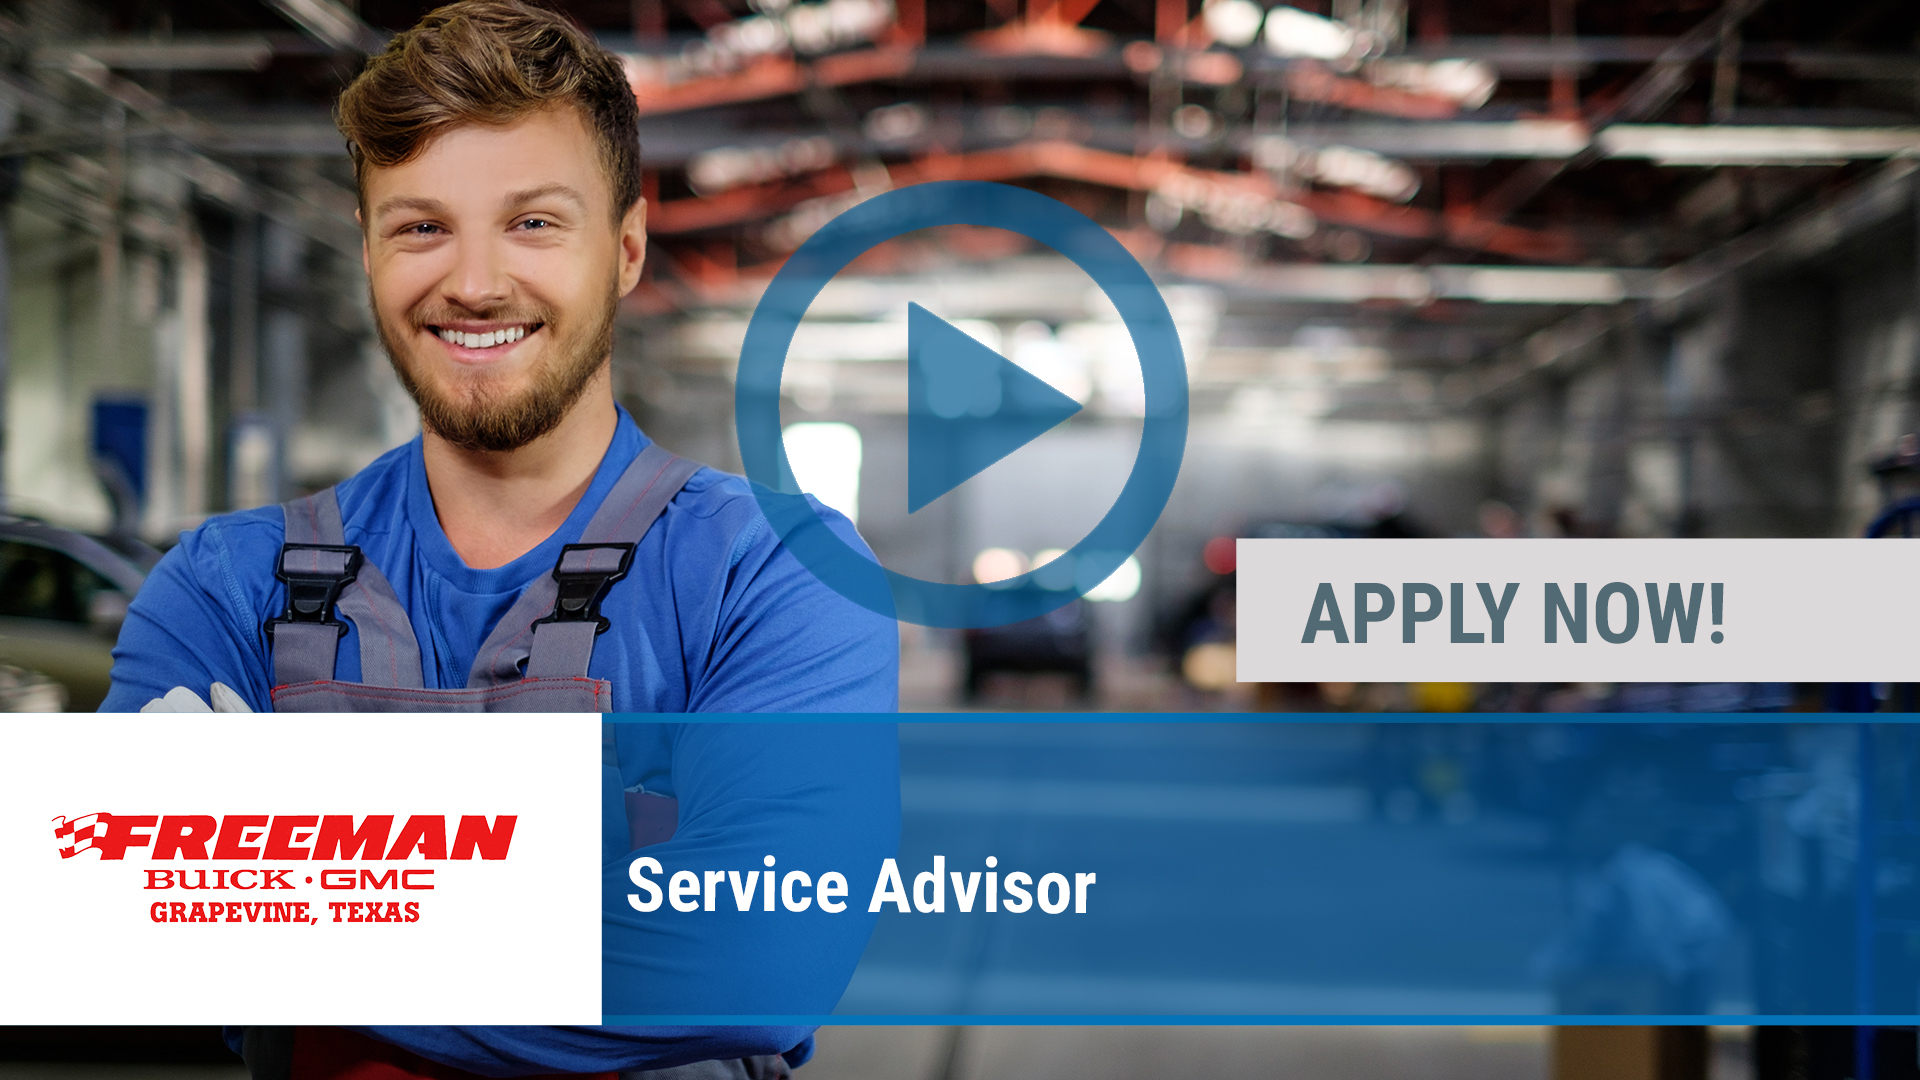 Watch our careers video for available job opening Service Advisor in Grapevine, TX